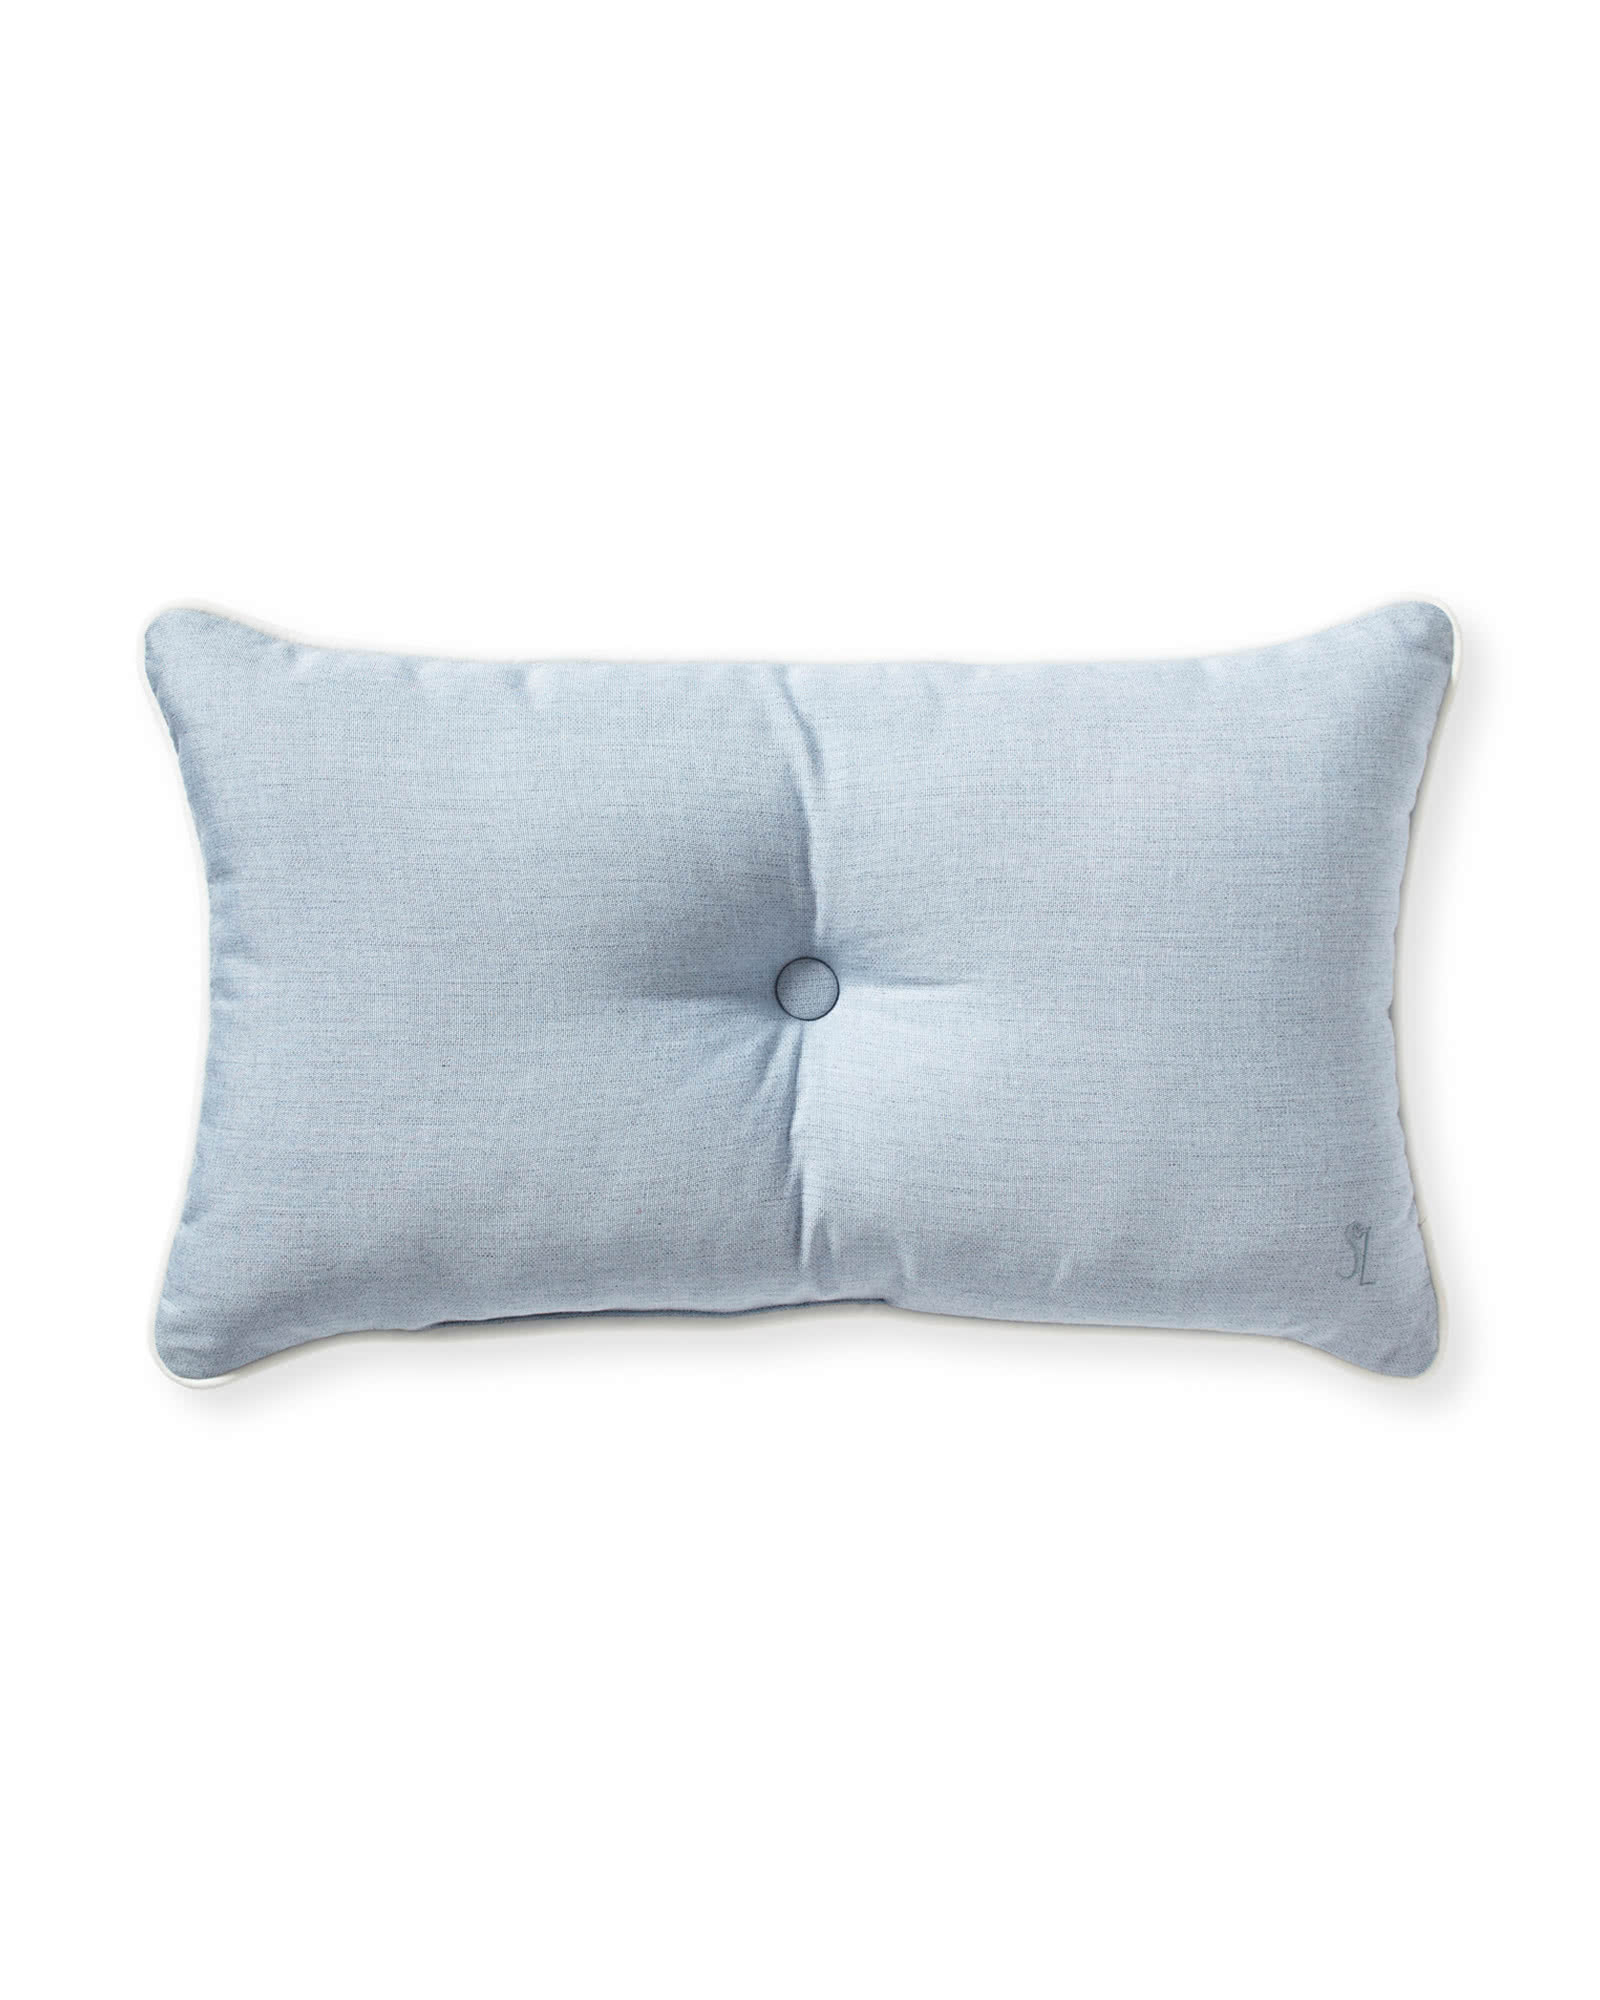 Sunbrella® Lido Pillow, Coastal Blue